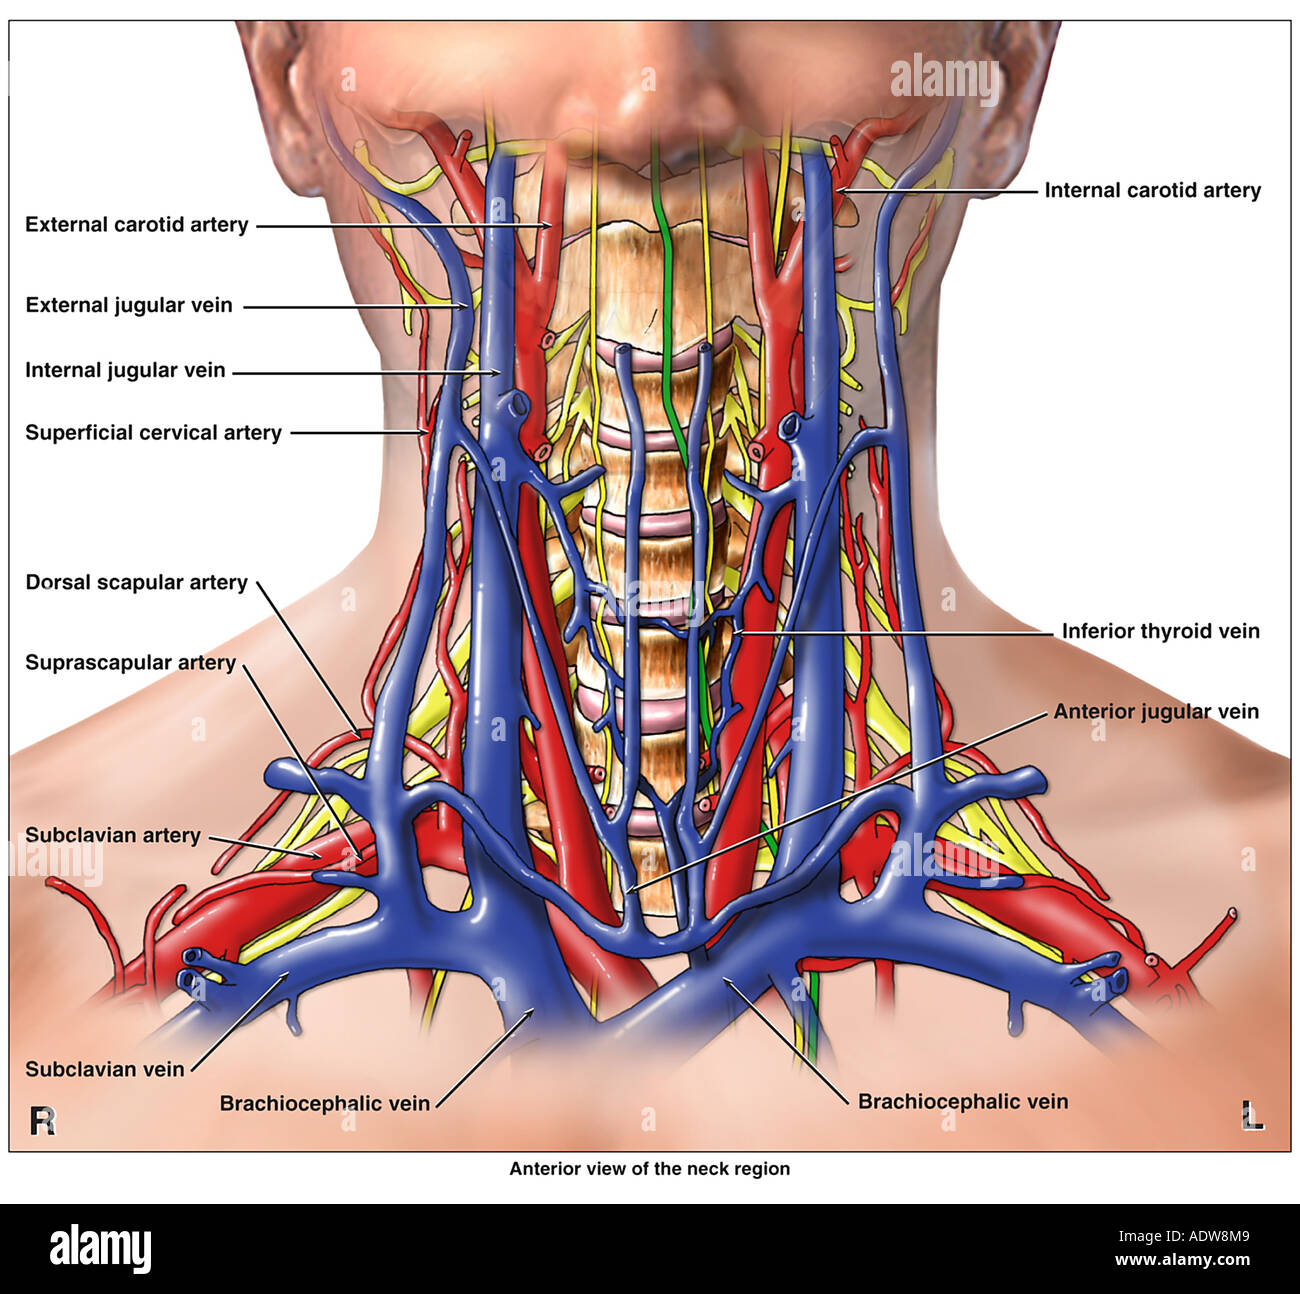 Neck Arteries Stock Photos & Neck Arteries Stock Images - Alamy